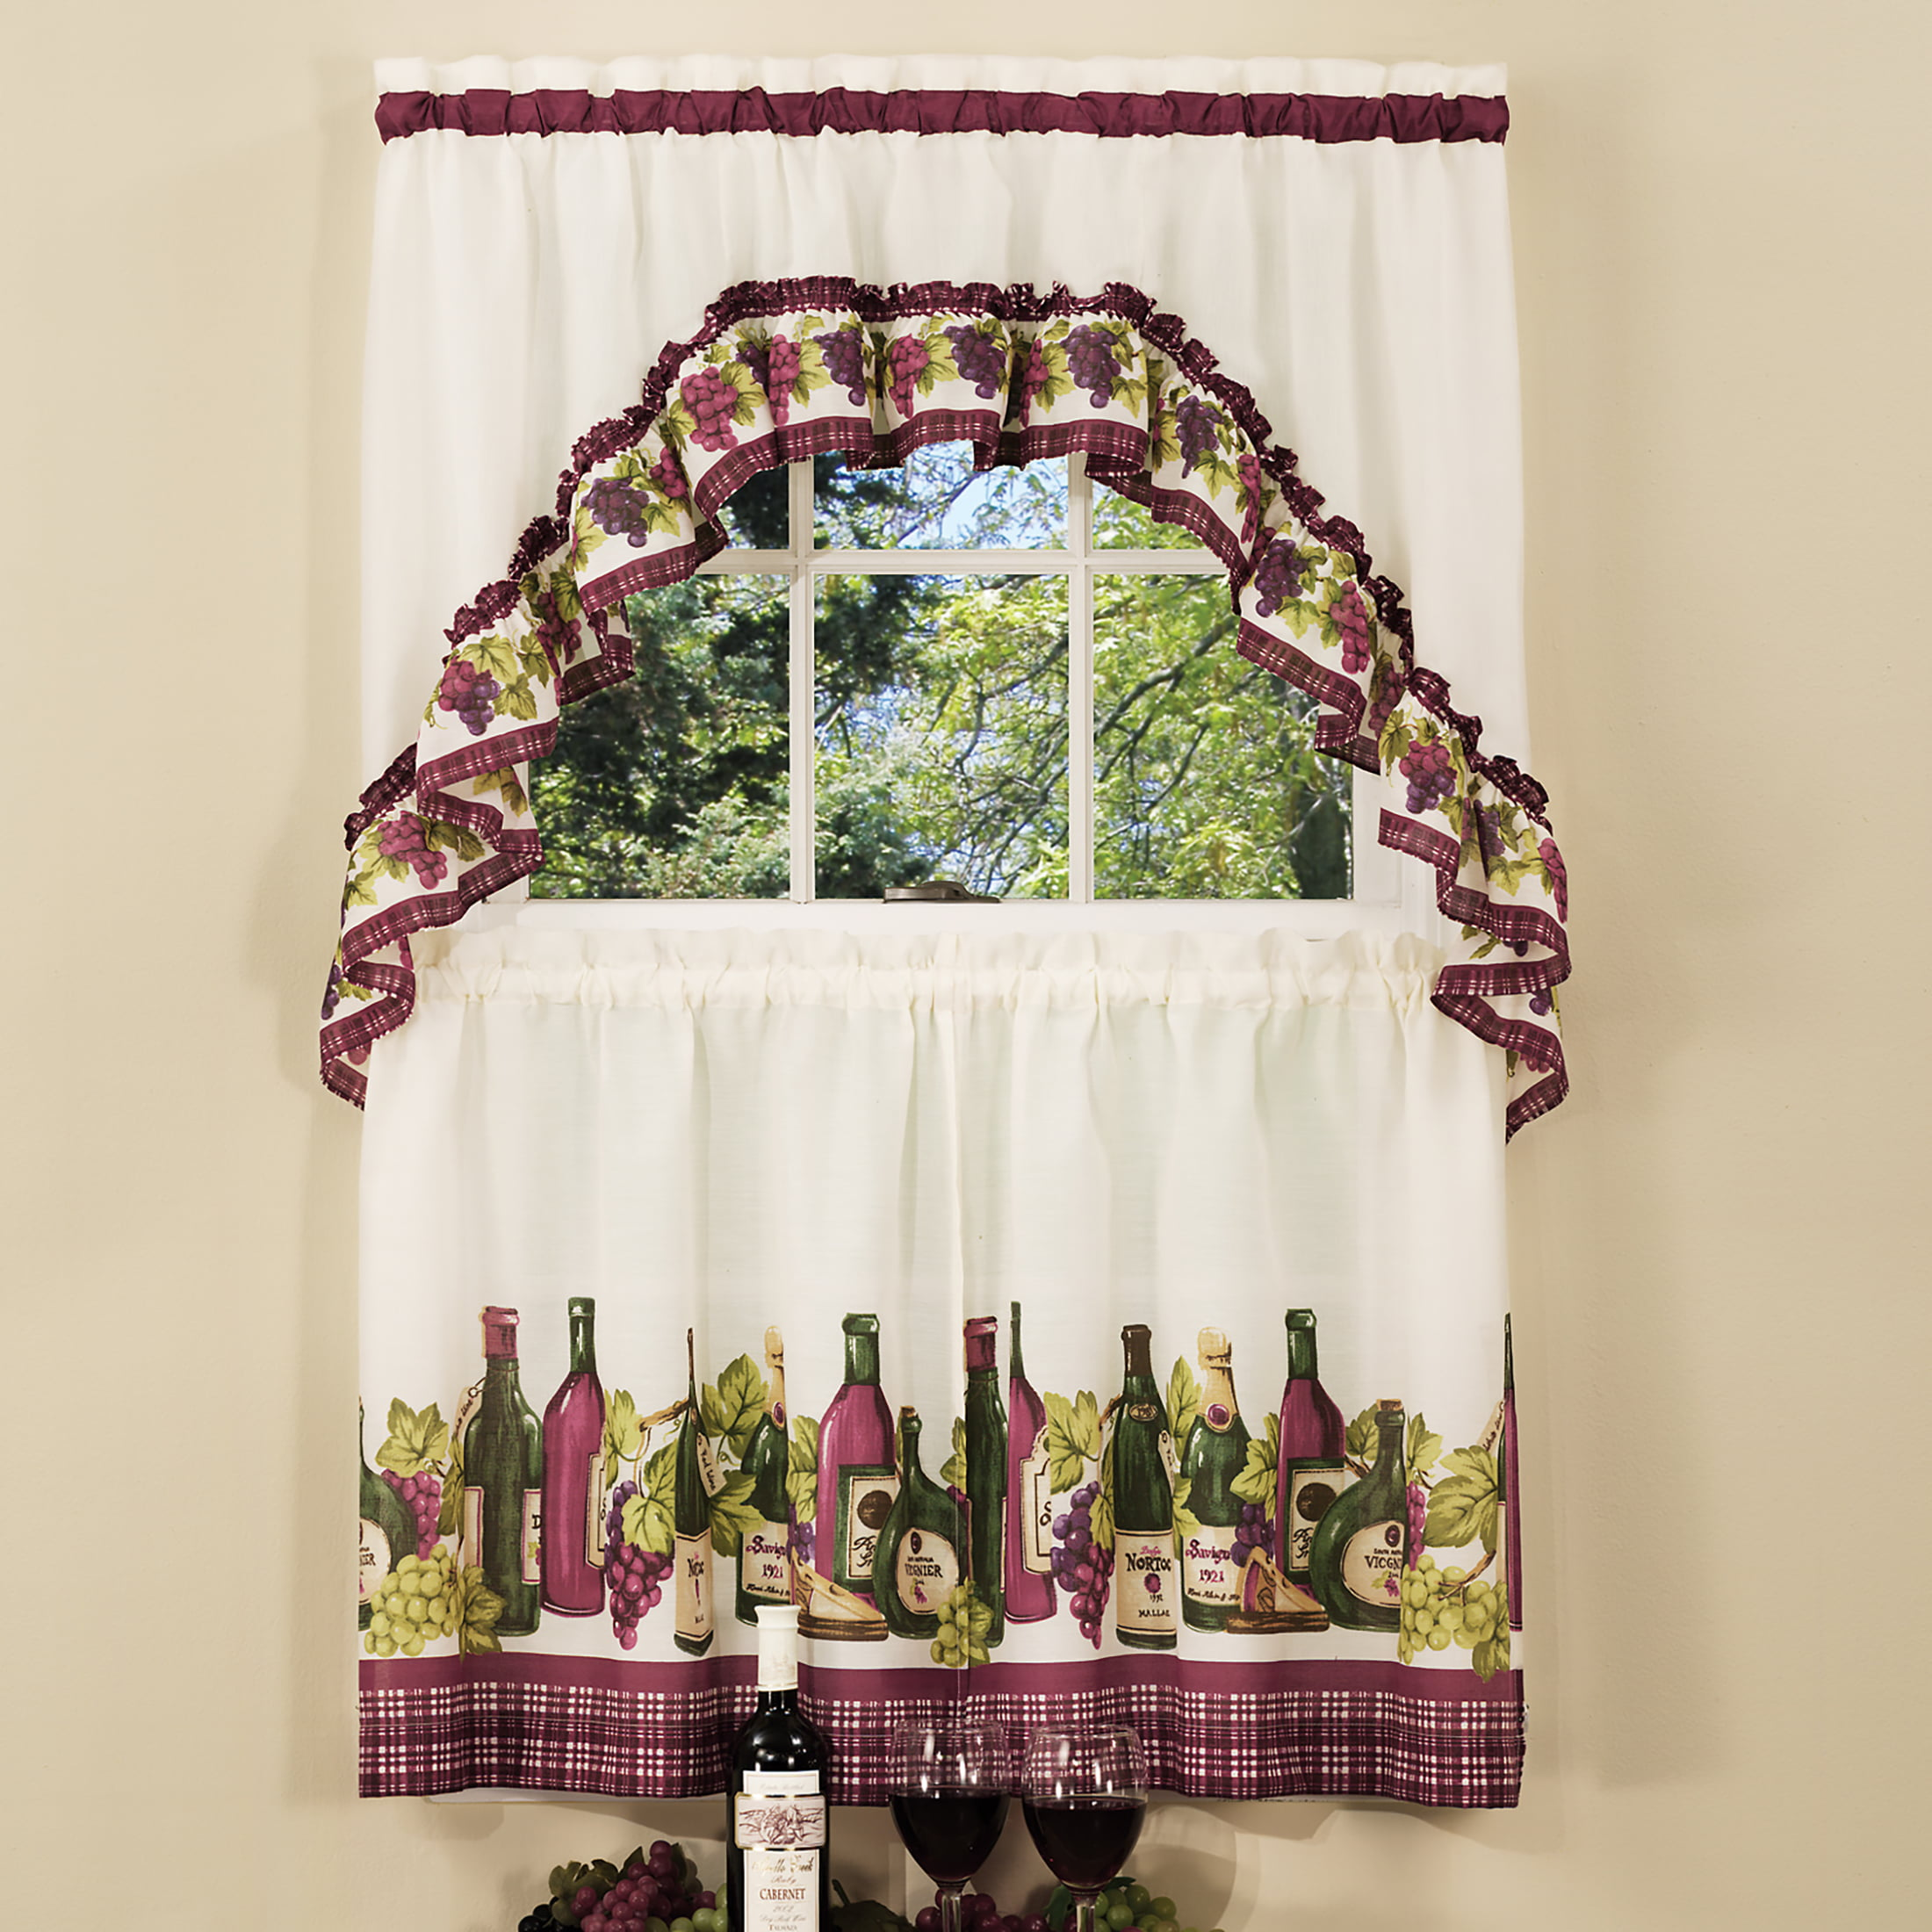 Powersellerusa 3 Piece Kitchen Curtain Set Wine Cheese Kitchen Cafe Curtain With Swag And Tier Panel Set Perfect Window Treatment For Living Room Bedroom And Kitchen Walmart Com Walmart Com